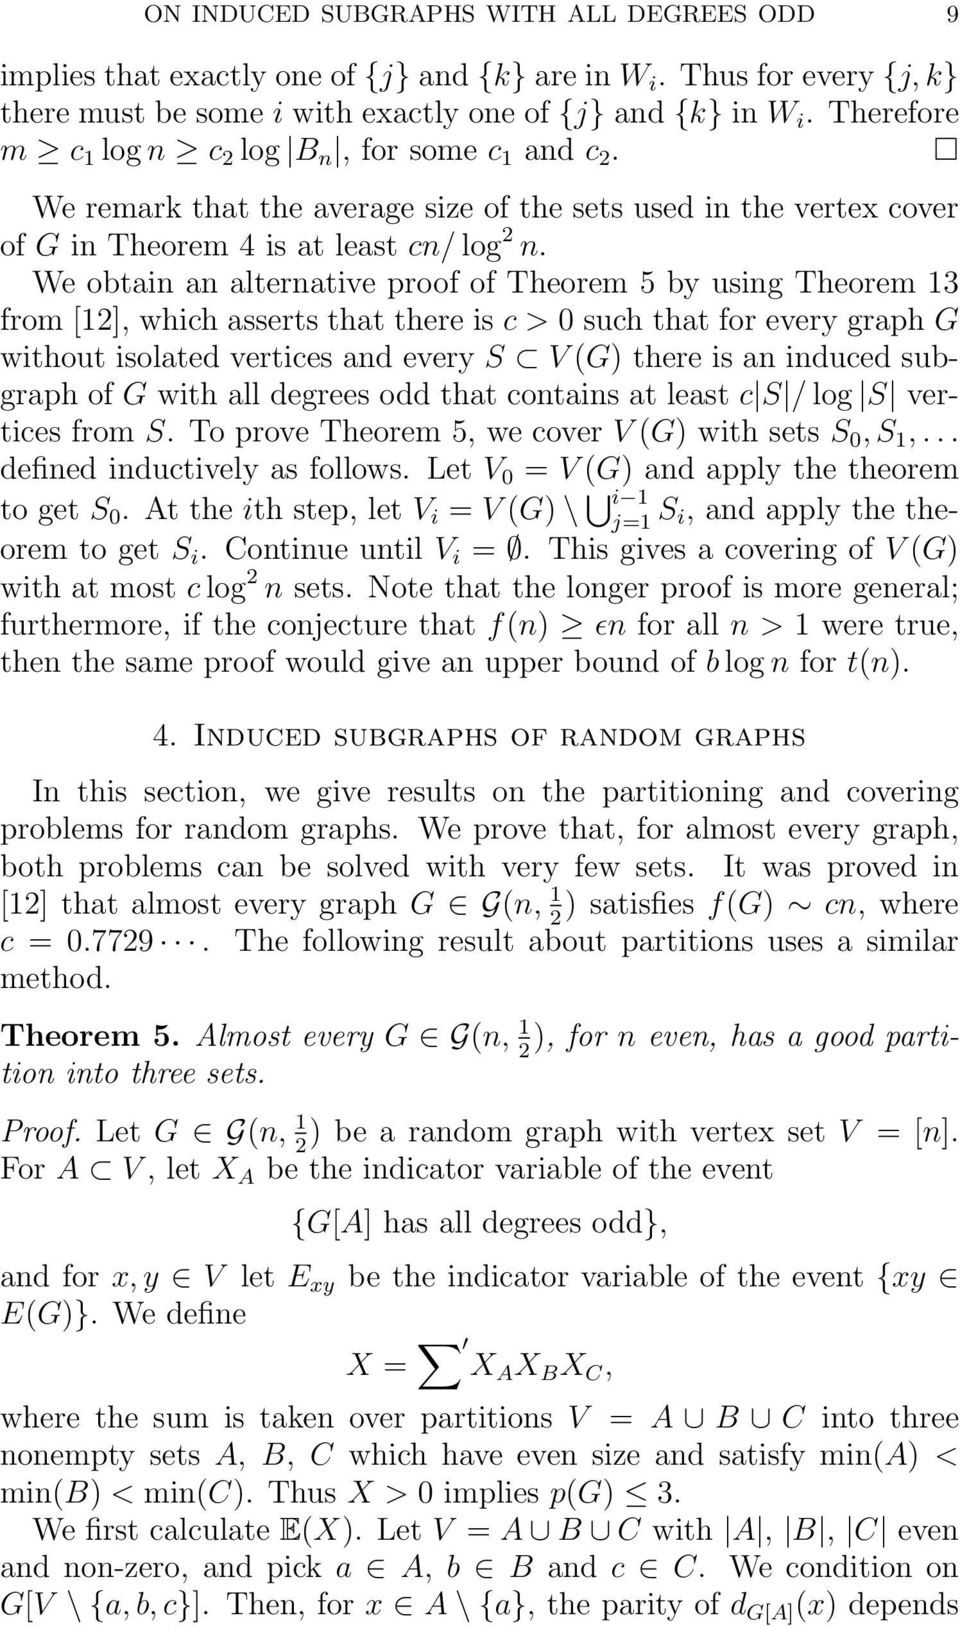 We obtain an alternative proof of Theorem 5 by using Theorem 13 from [1], which asserts that there is c > 0 such that for every graph G without isolated vertices and every S V (G) there is an induced